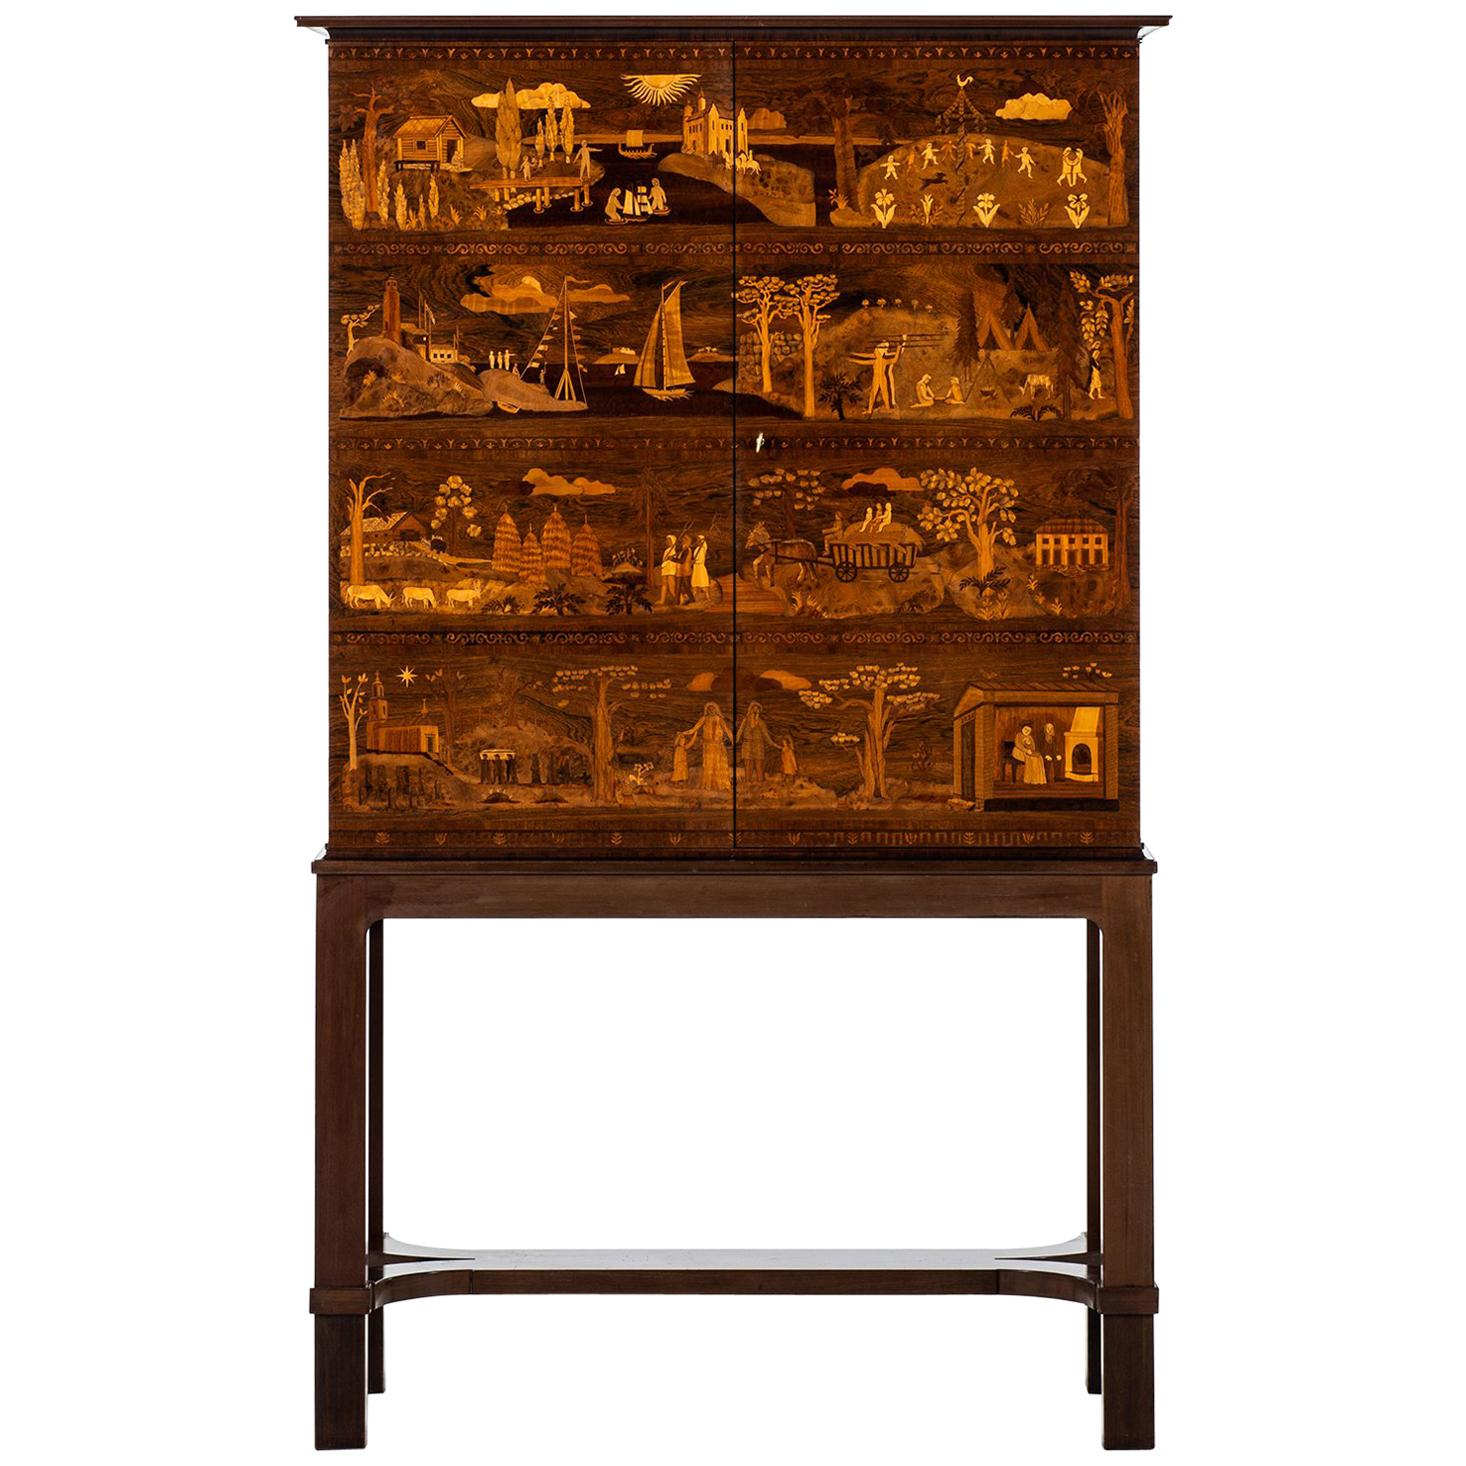 Carl Malmstem Master Cabinet The Four Ages Produced by David Blomberg in Sweden